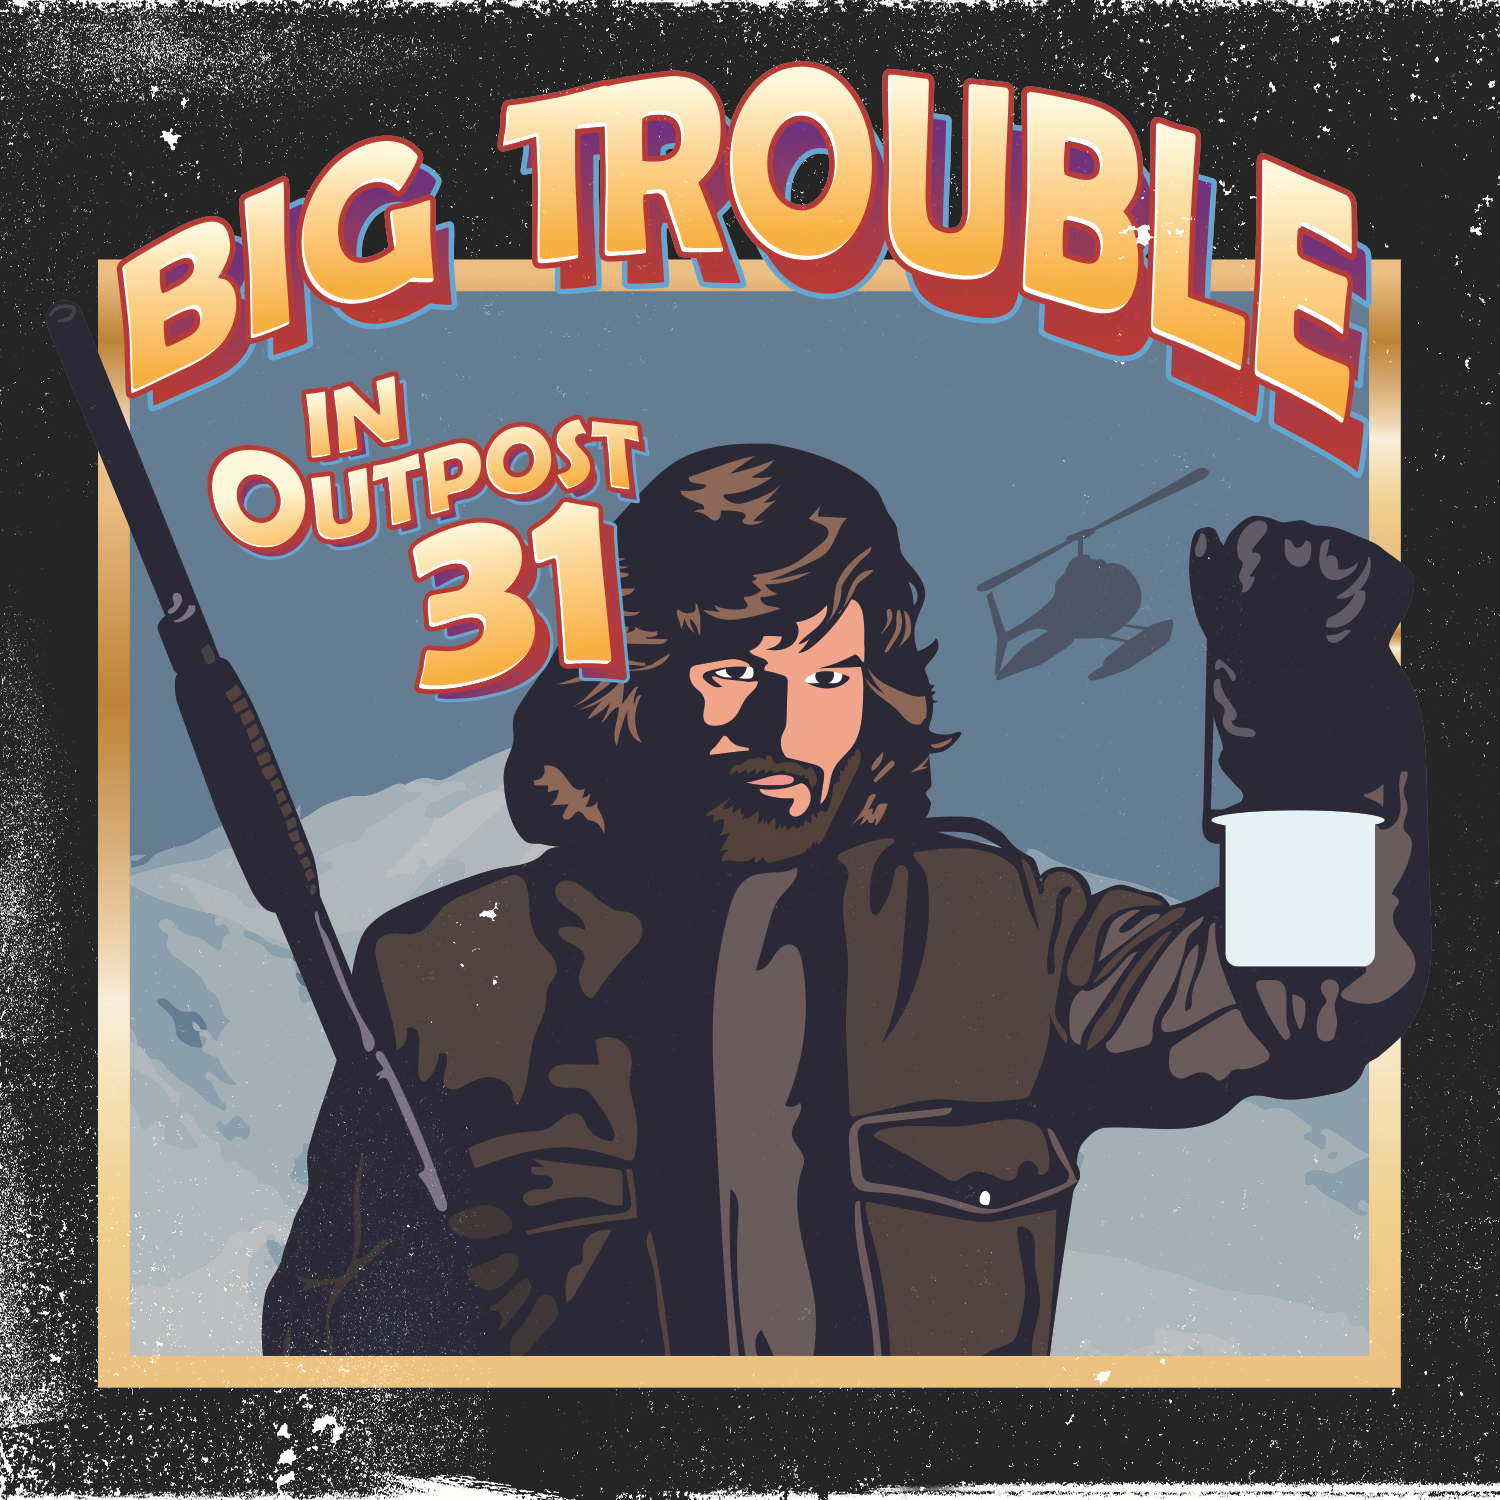 Big Trouble in Outpost 31